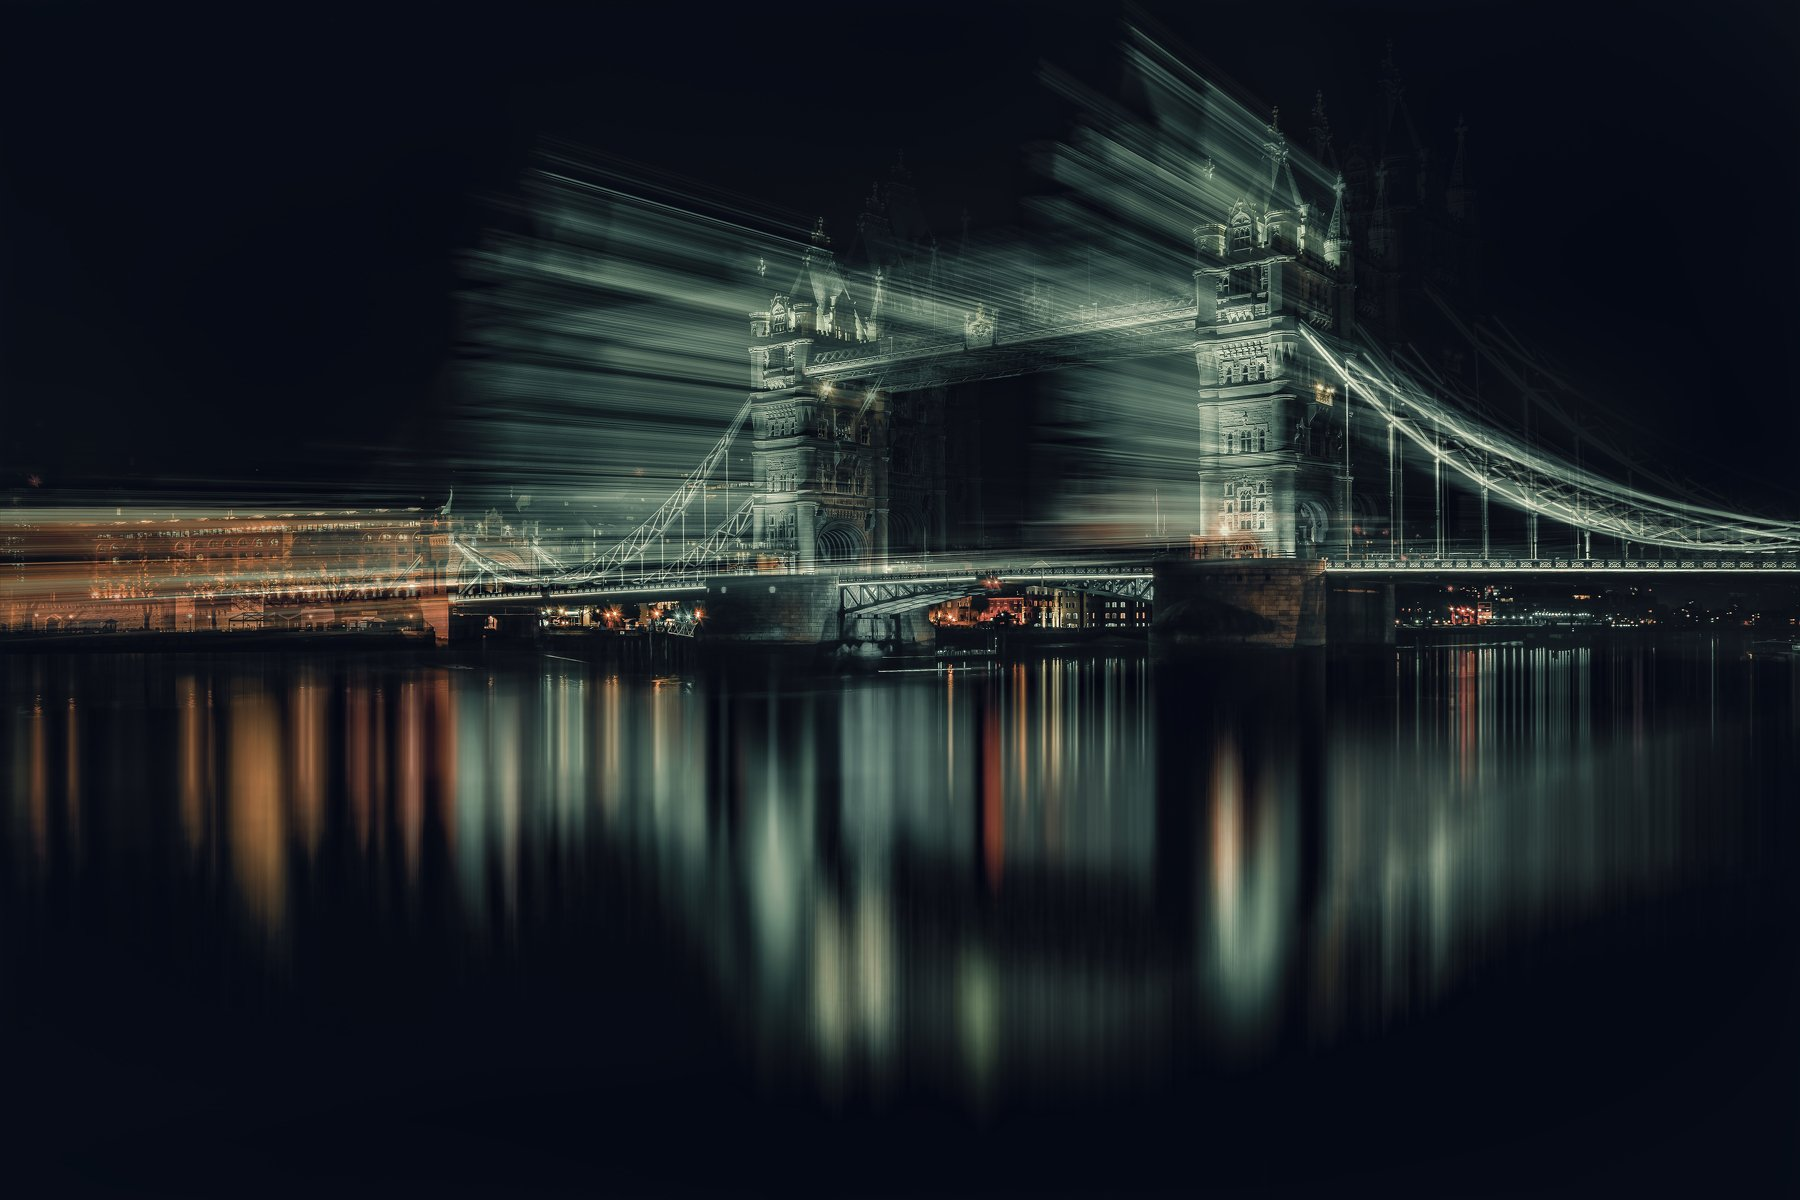 city, abstract, conceptual , london, portugal, old, europe, creative, Antonio Bernardino